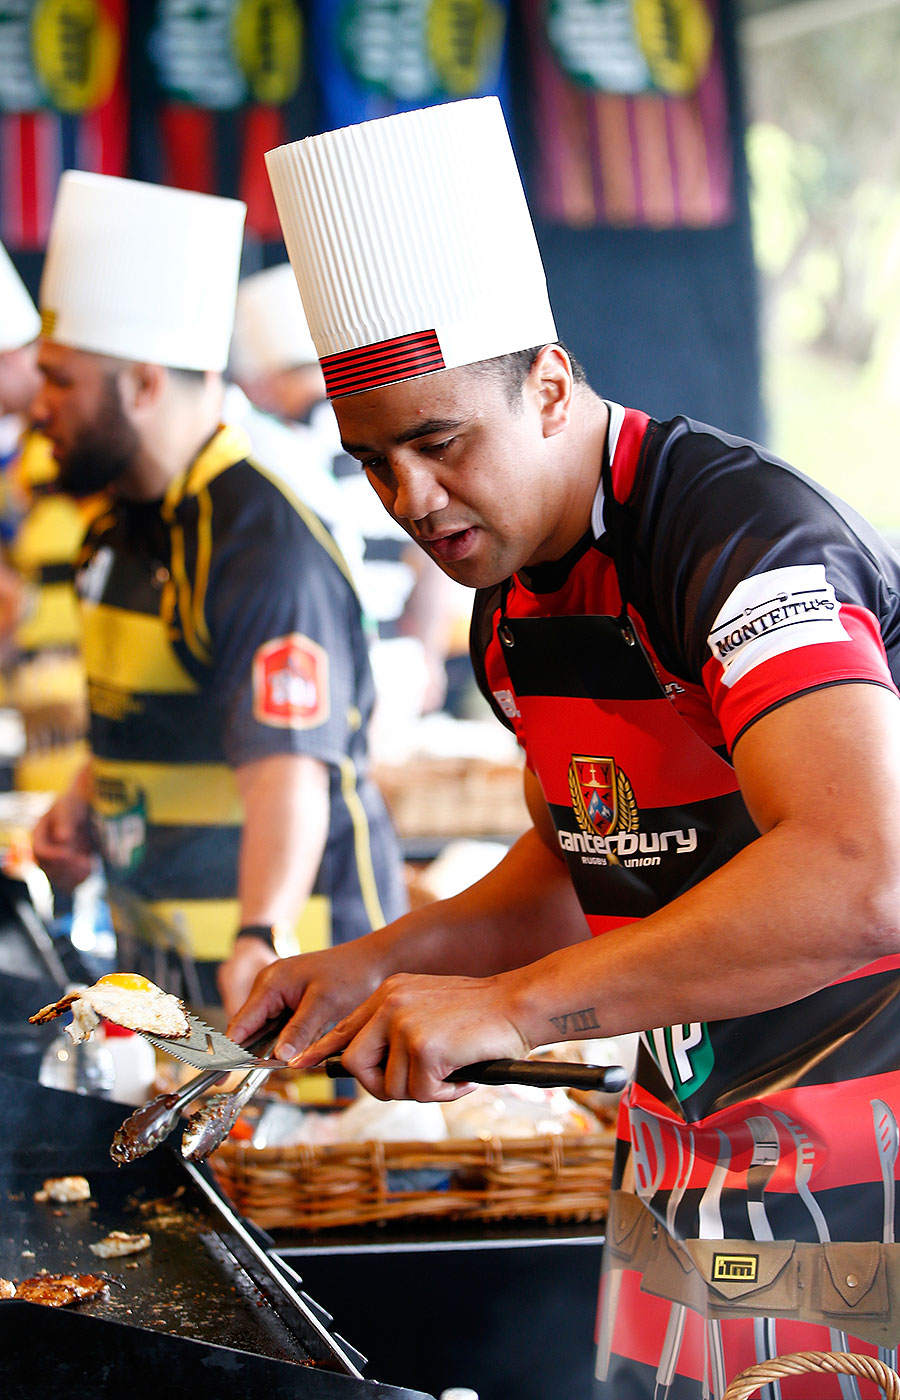 Canterbury's Nasi Manu cooks during a hamburger competition at the ITM Cup season launch